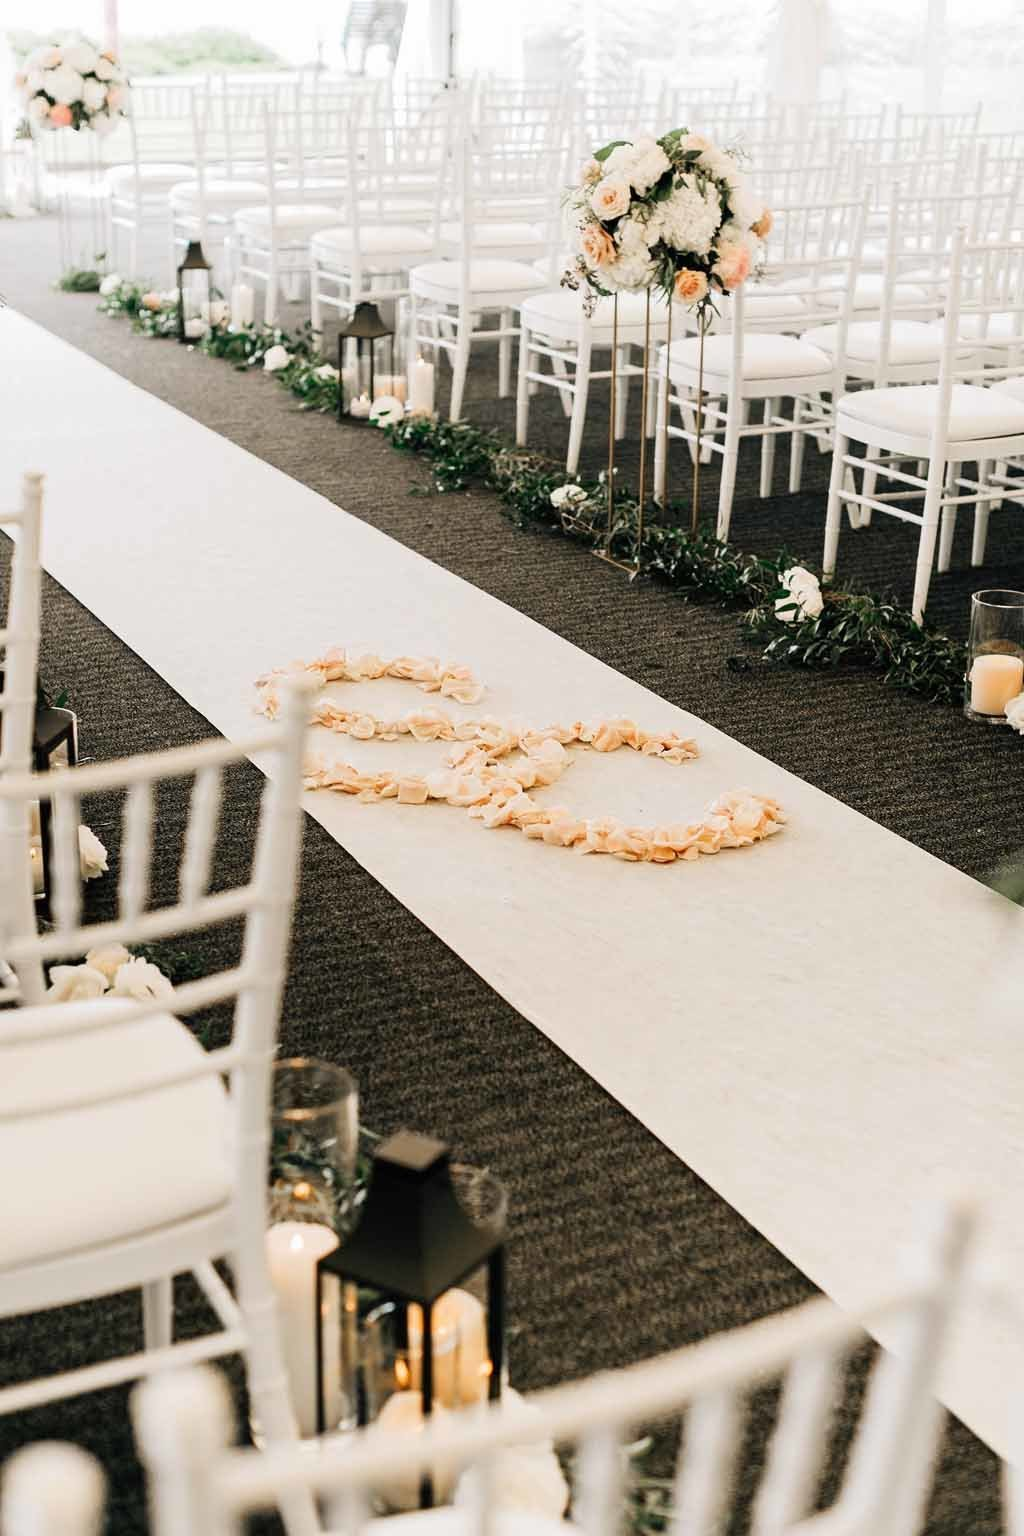 A personal touch of the couples initials in rose petals on the aisle runner designed by Flora Nova Design